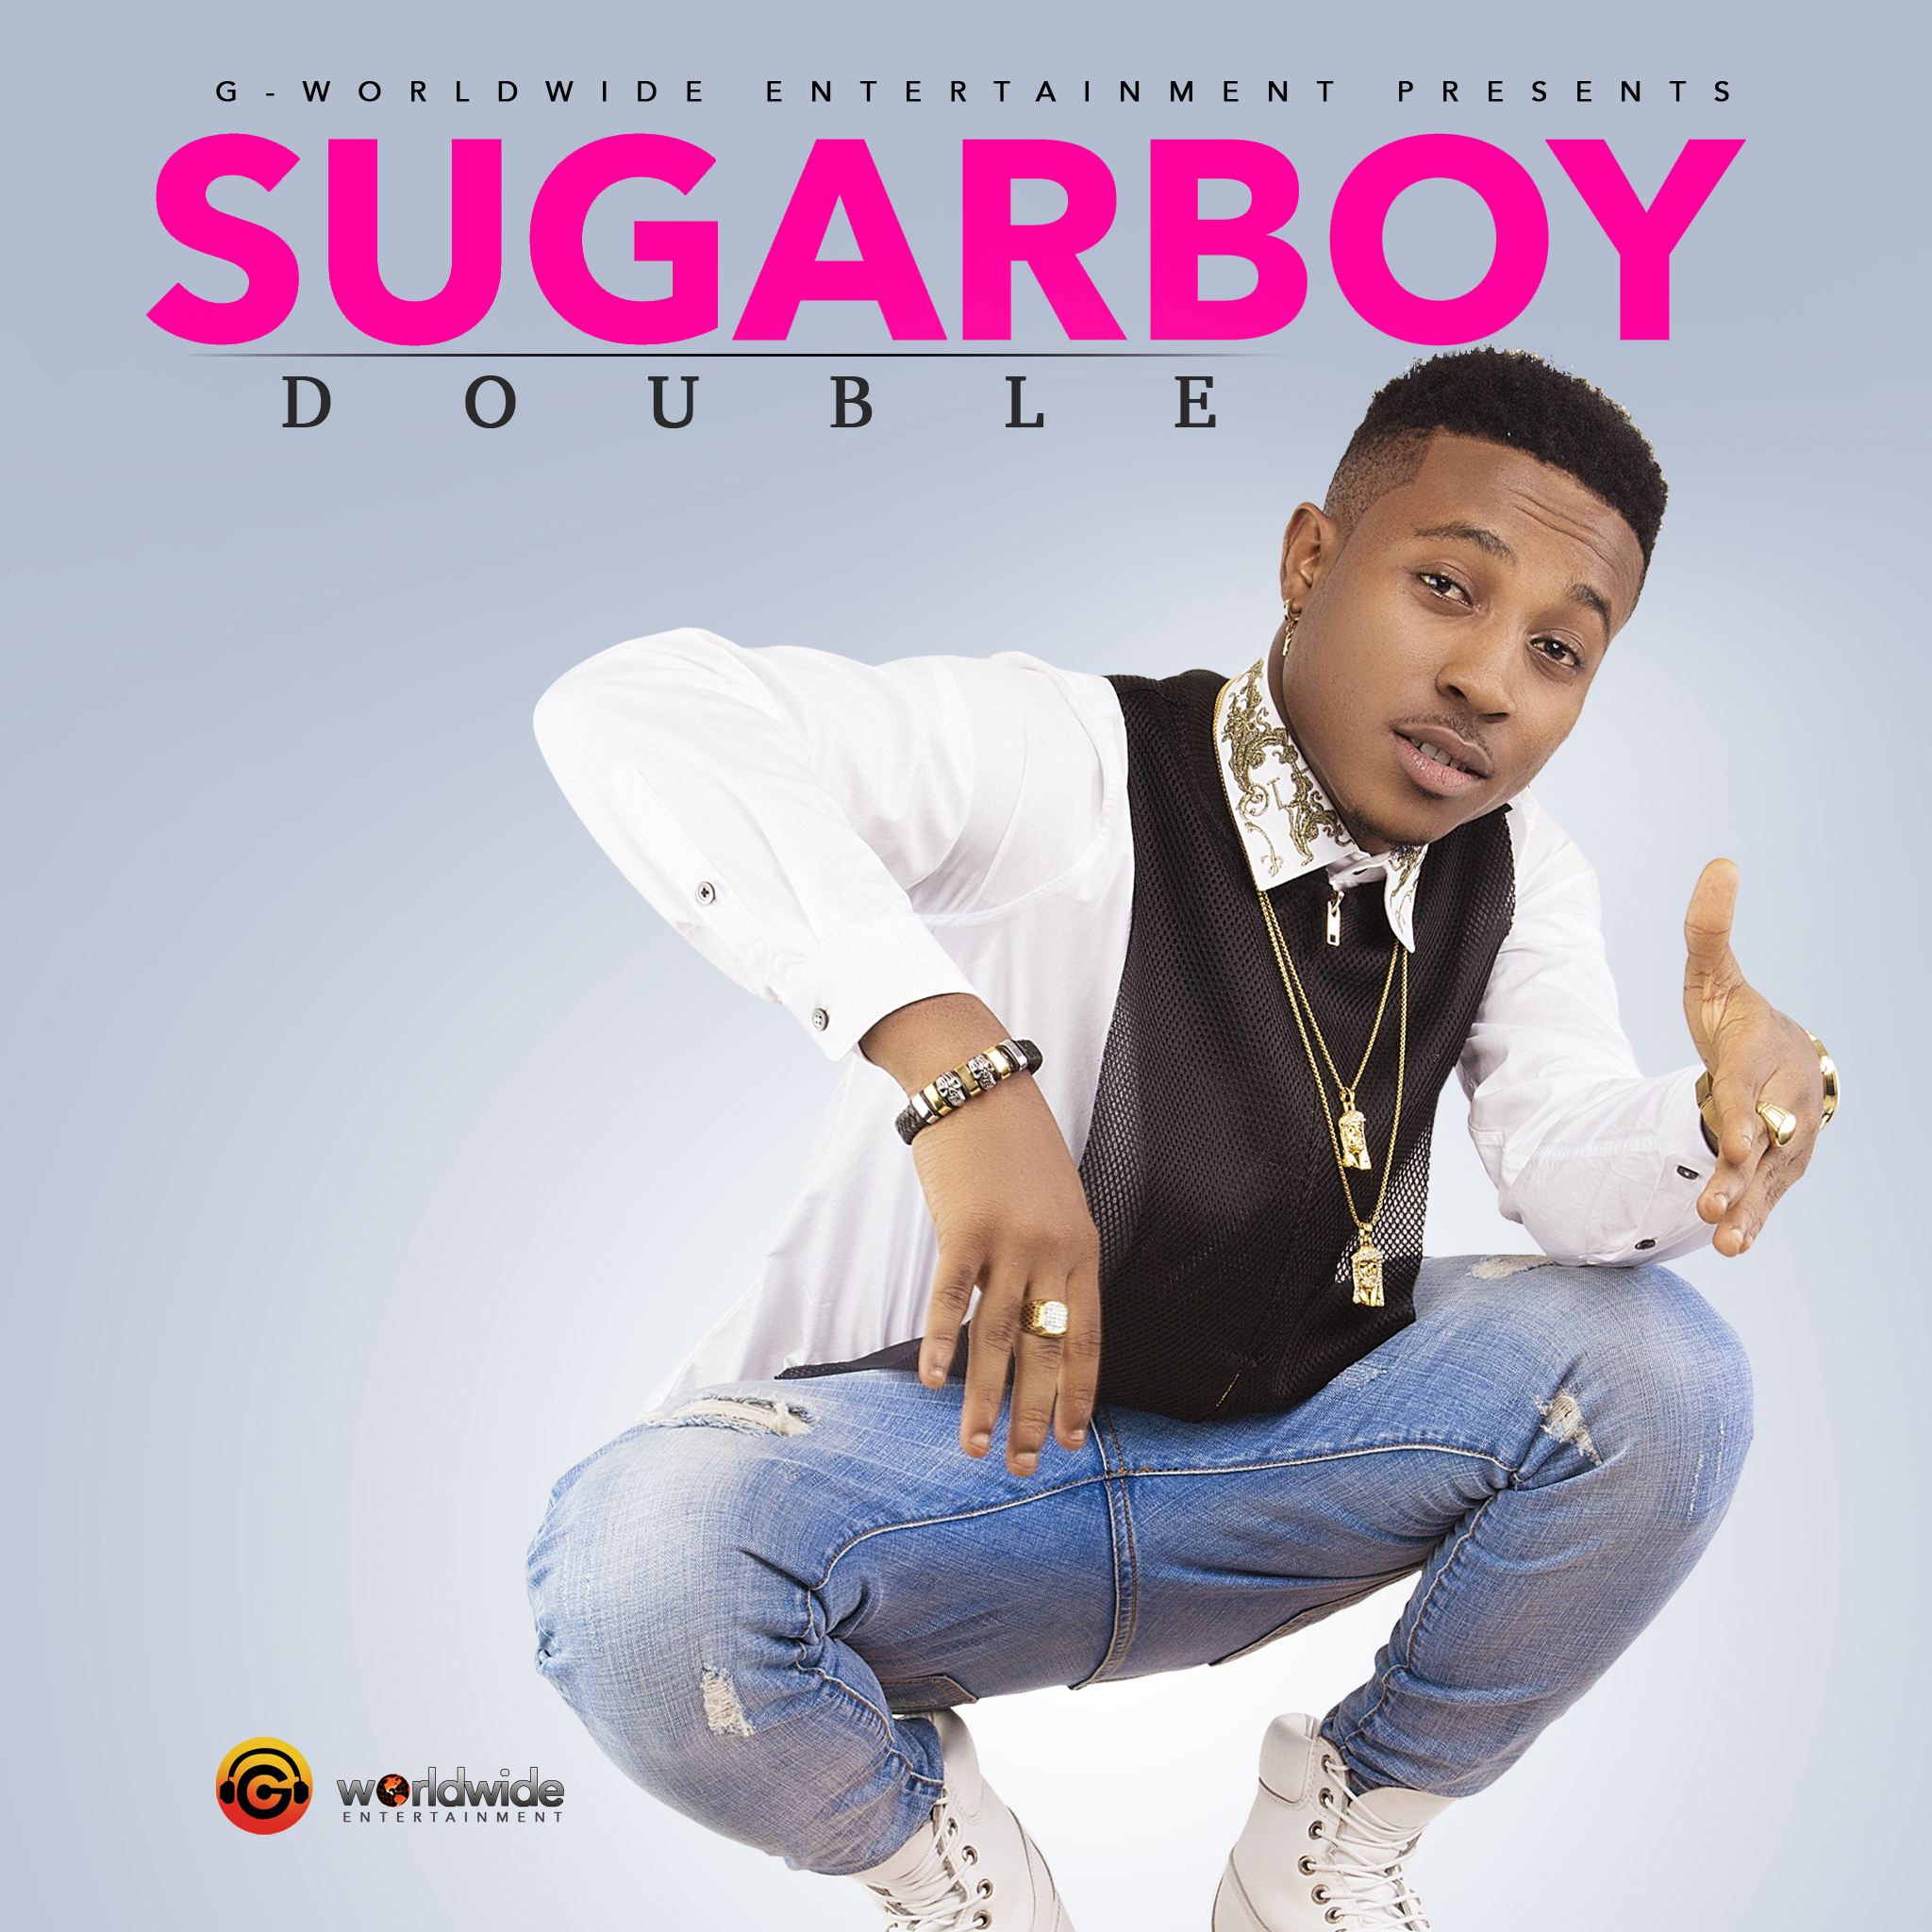 PREMIERE: Sugarboy - Double (prod. BeatBurx)